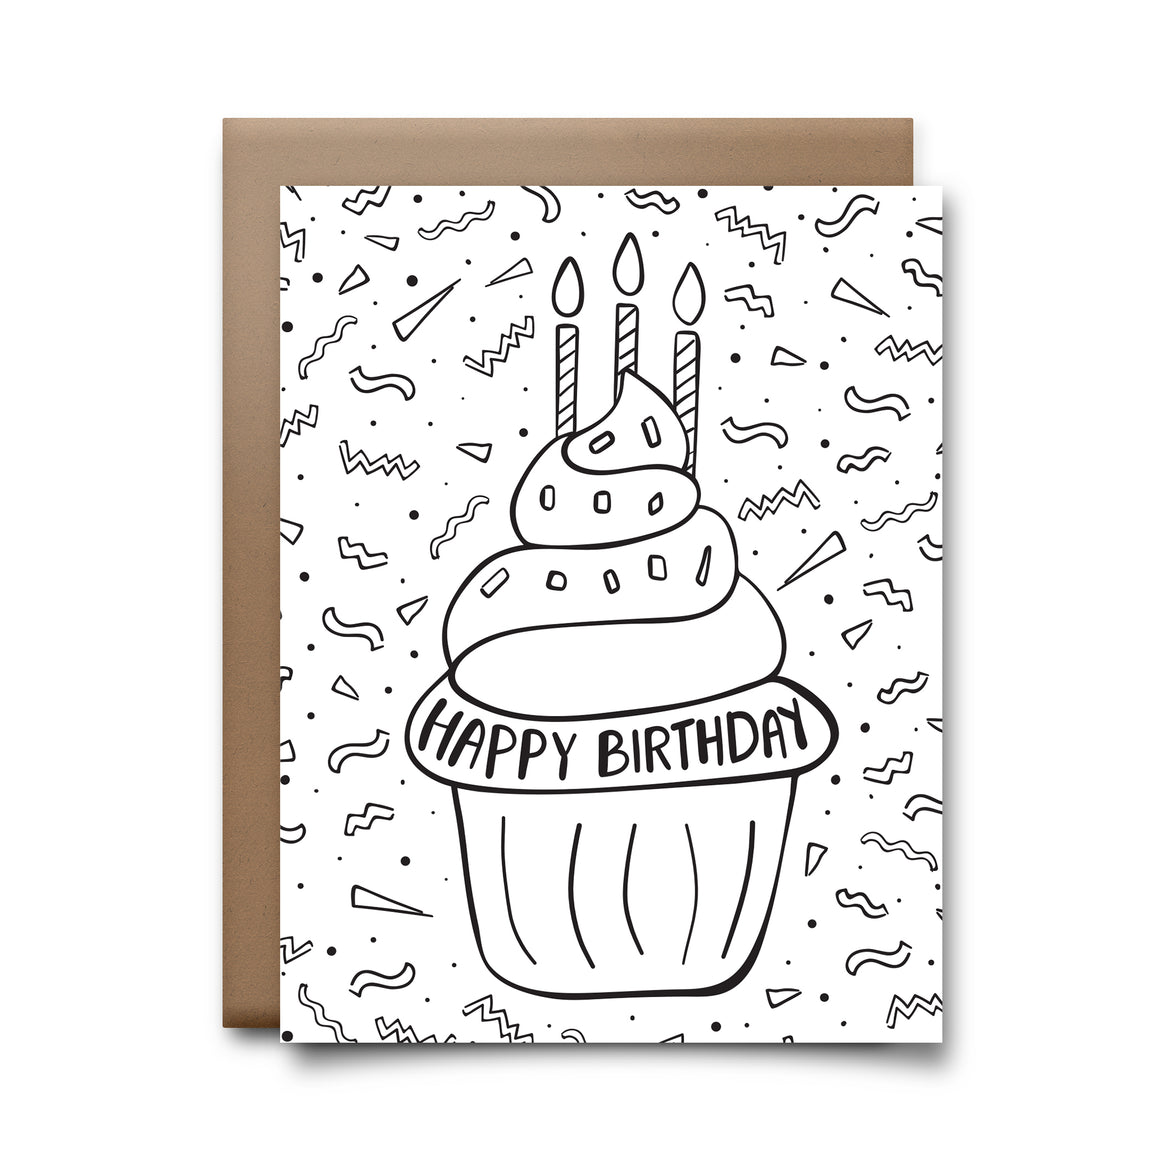 color cupcake | greeting card